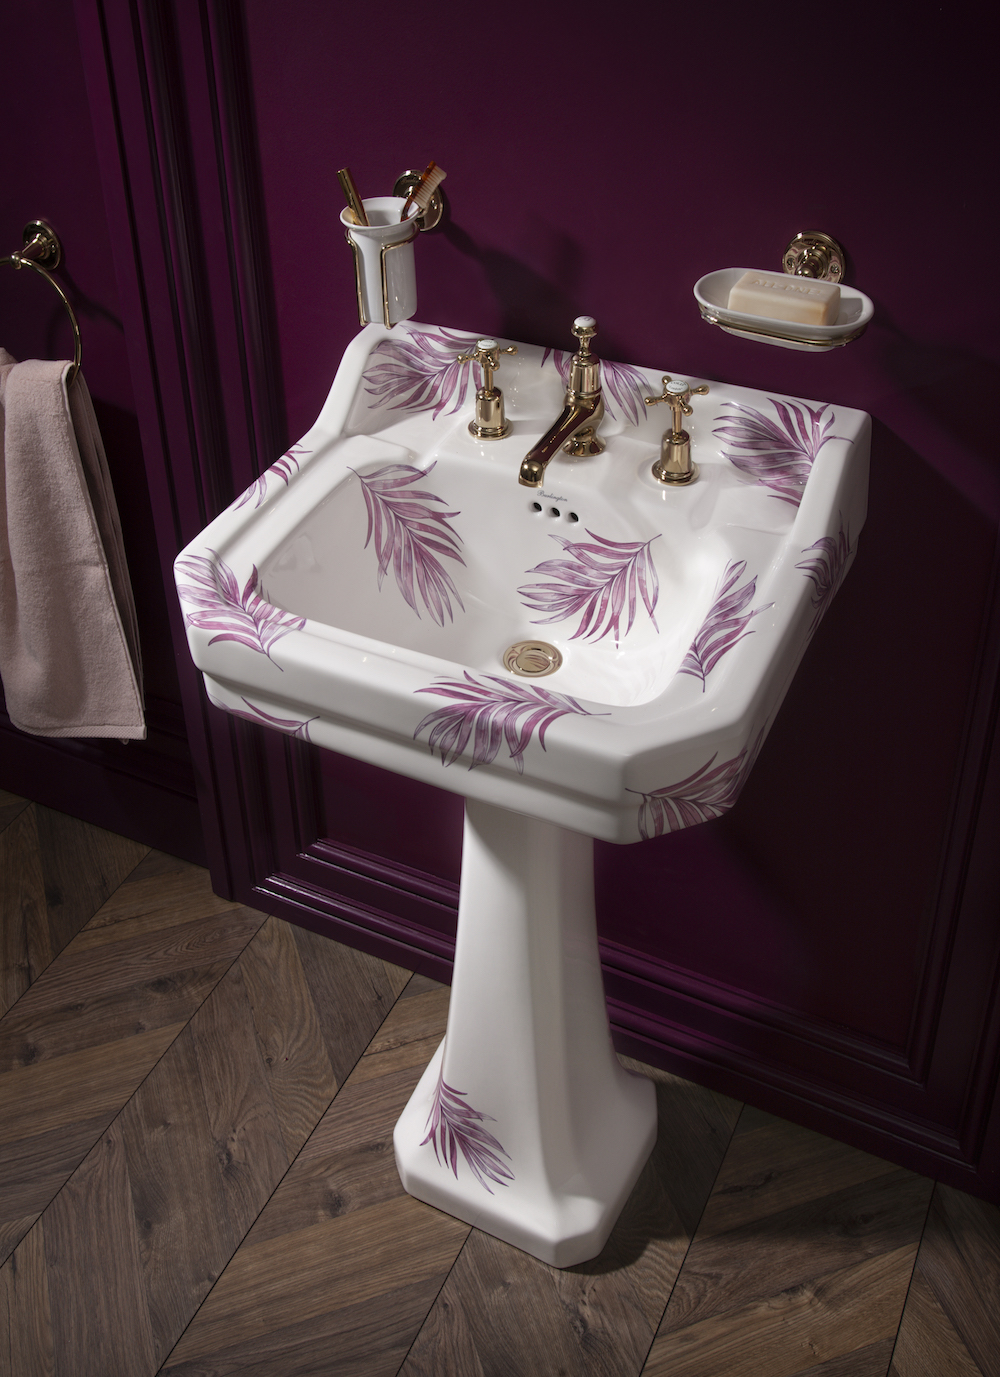 A white basin with pink features painted on